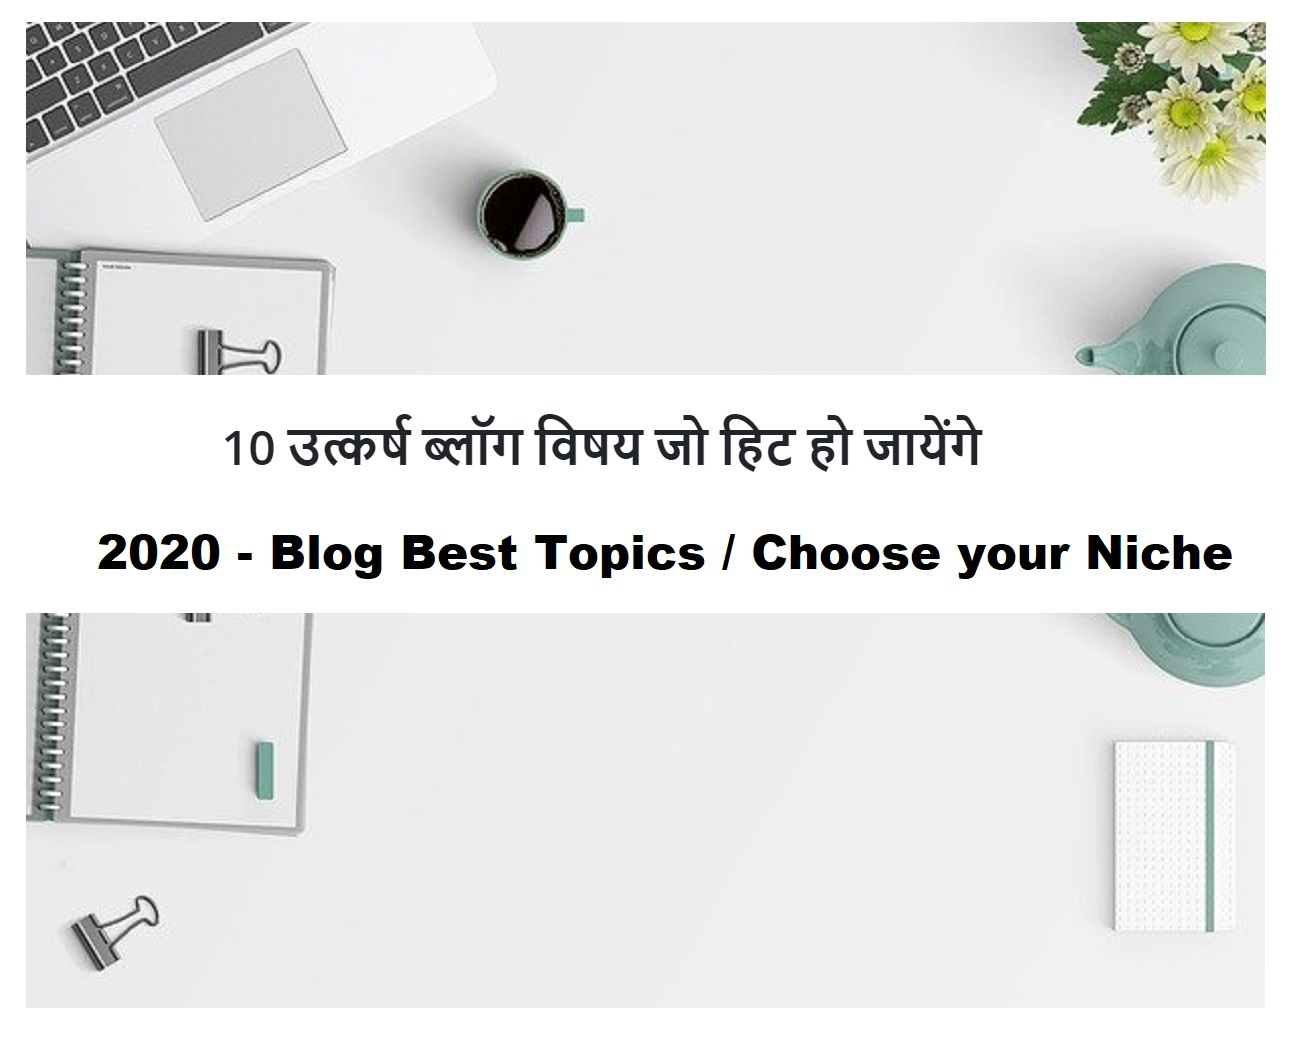 2020 ke best blog topics - Blog shuru karen बी;